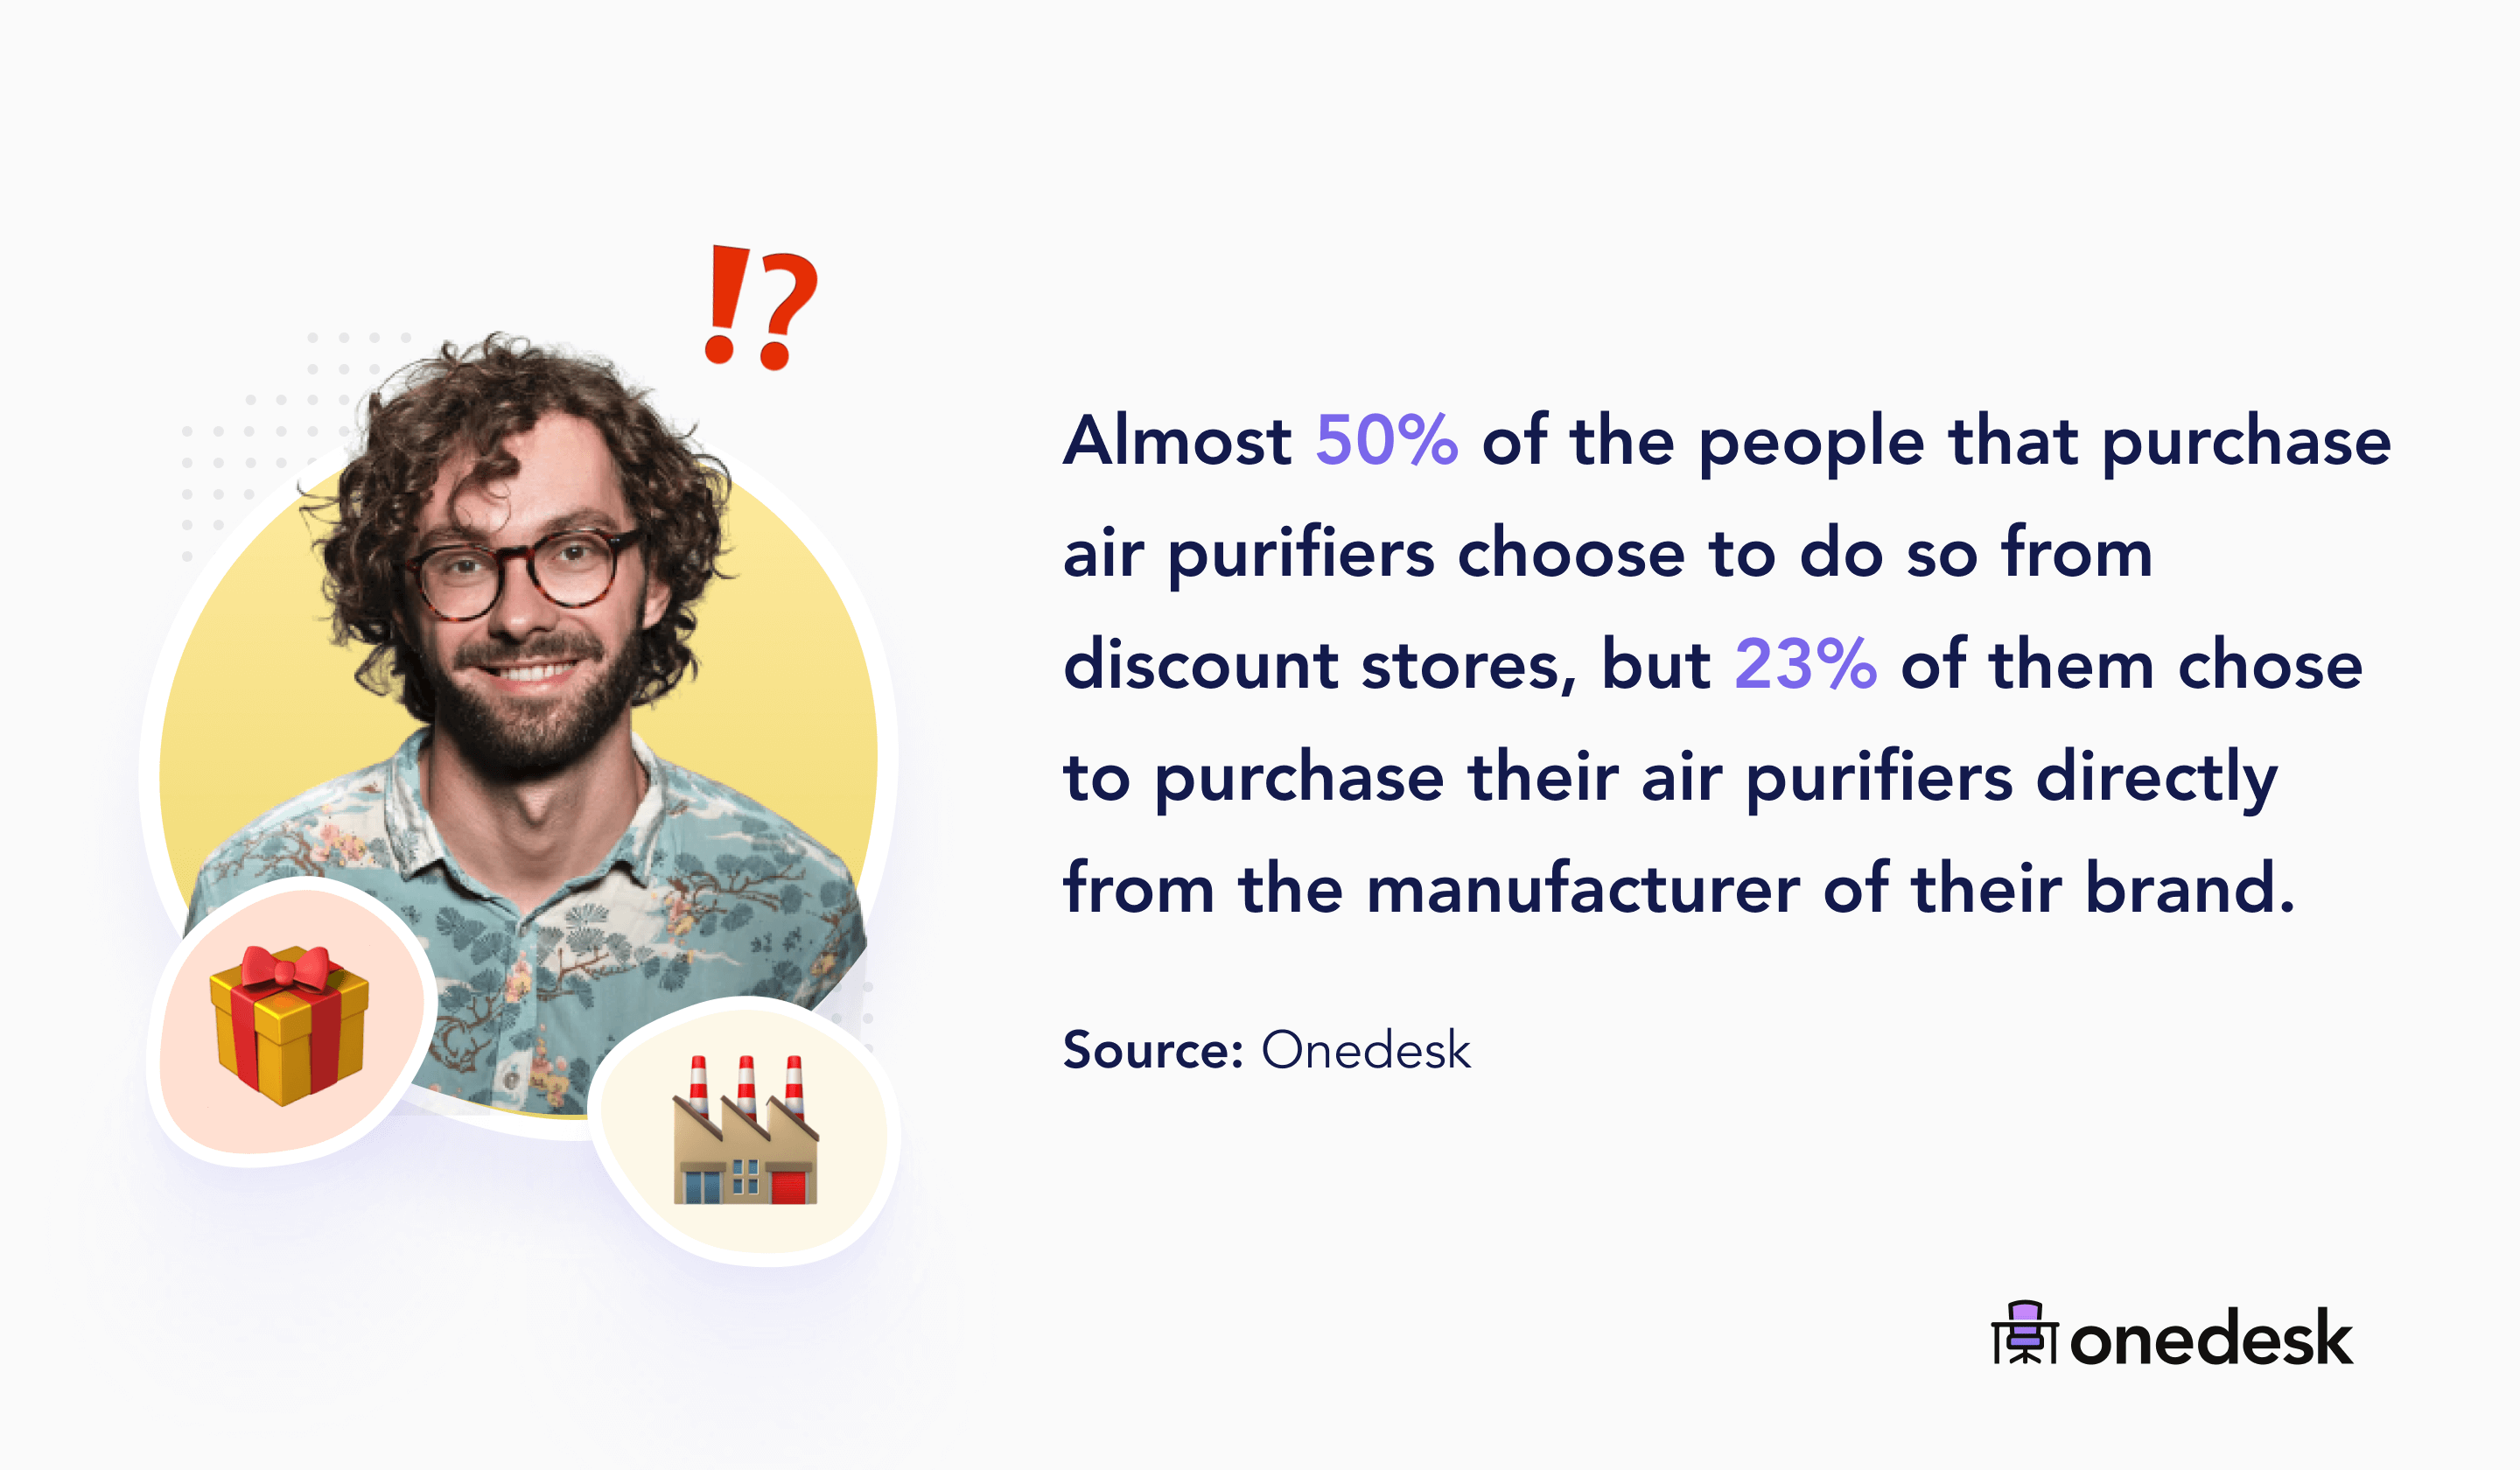 50% of people purchase air purifiers at discount stores